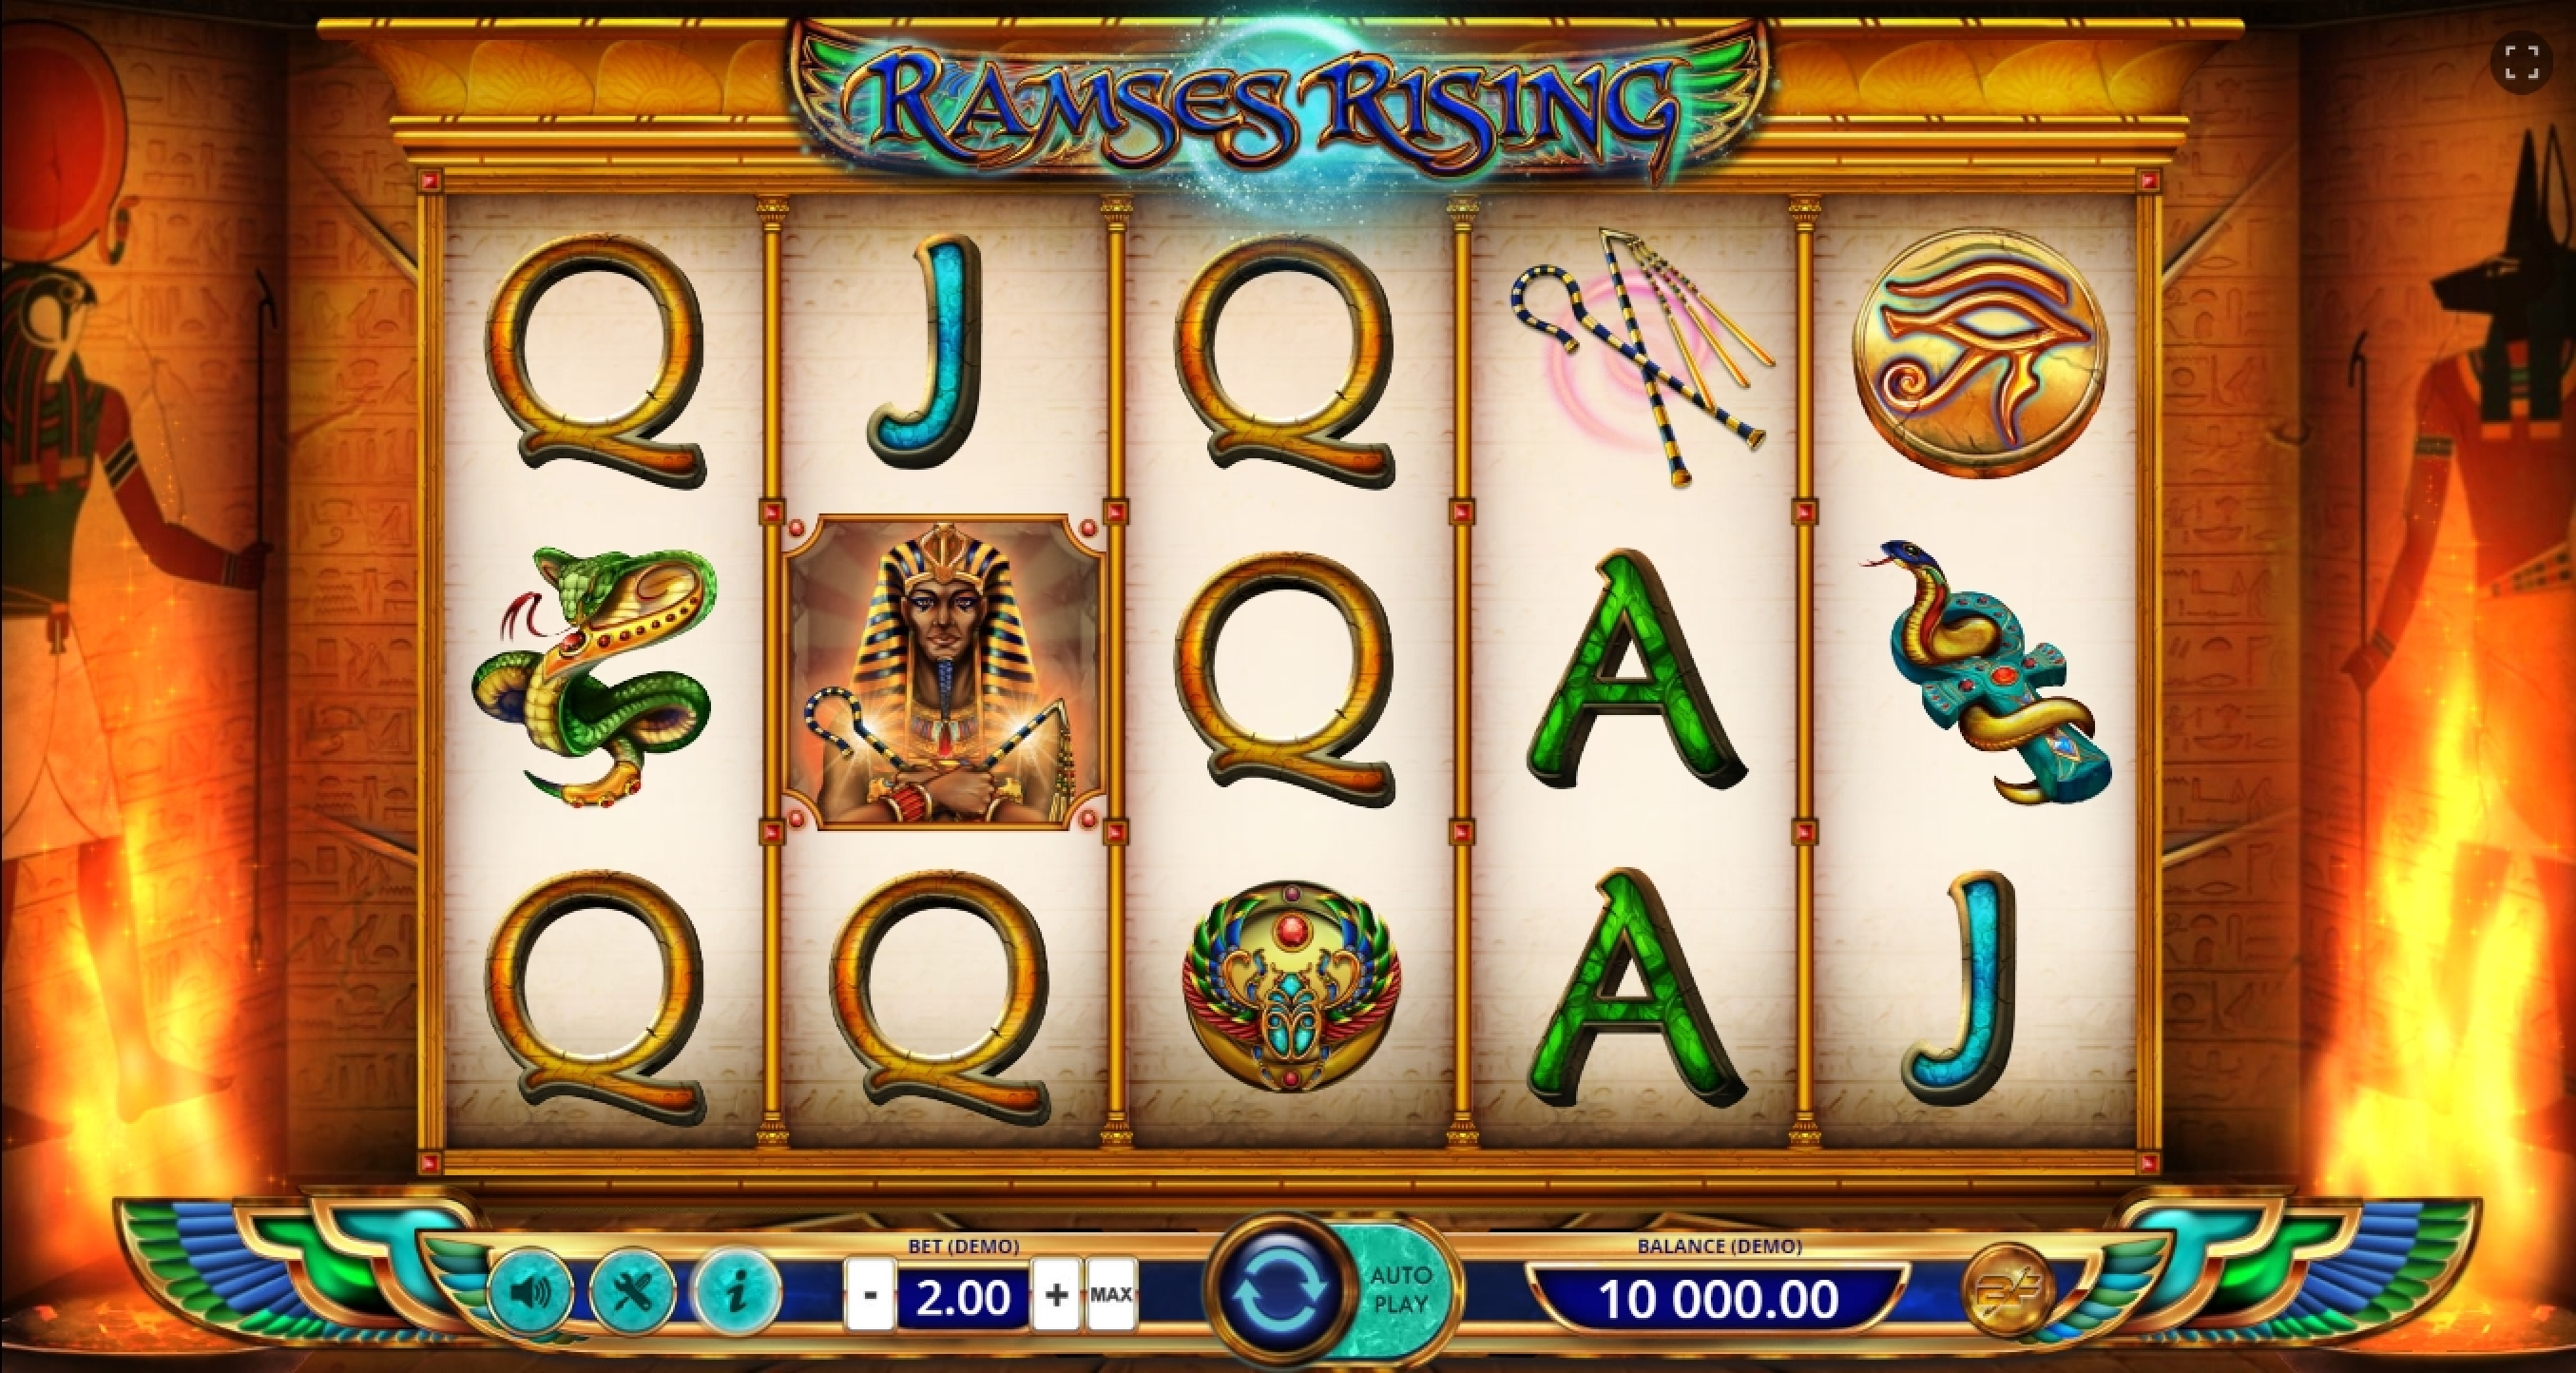 Reels in Ramses Rising Slot Game by BF games